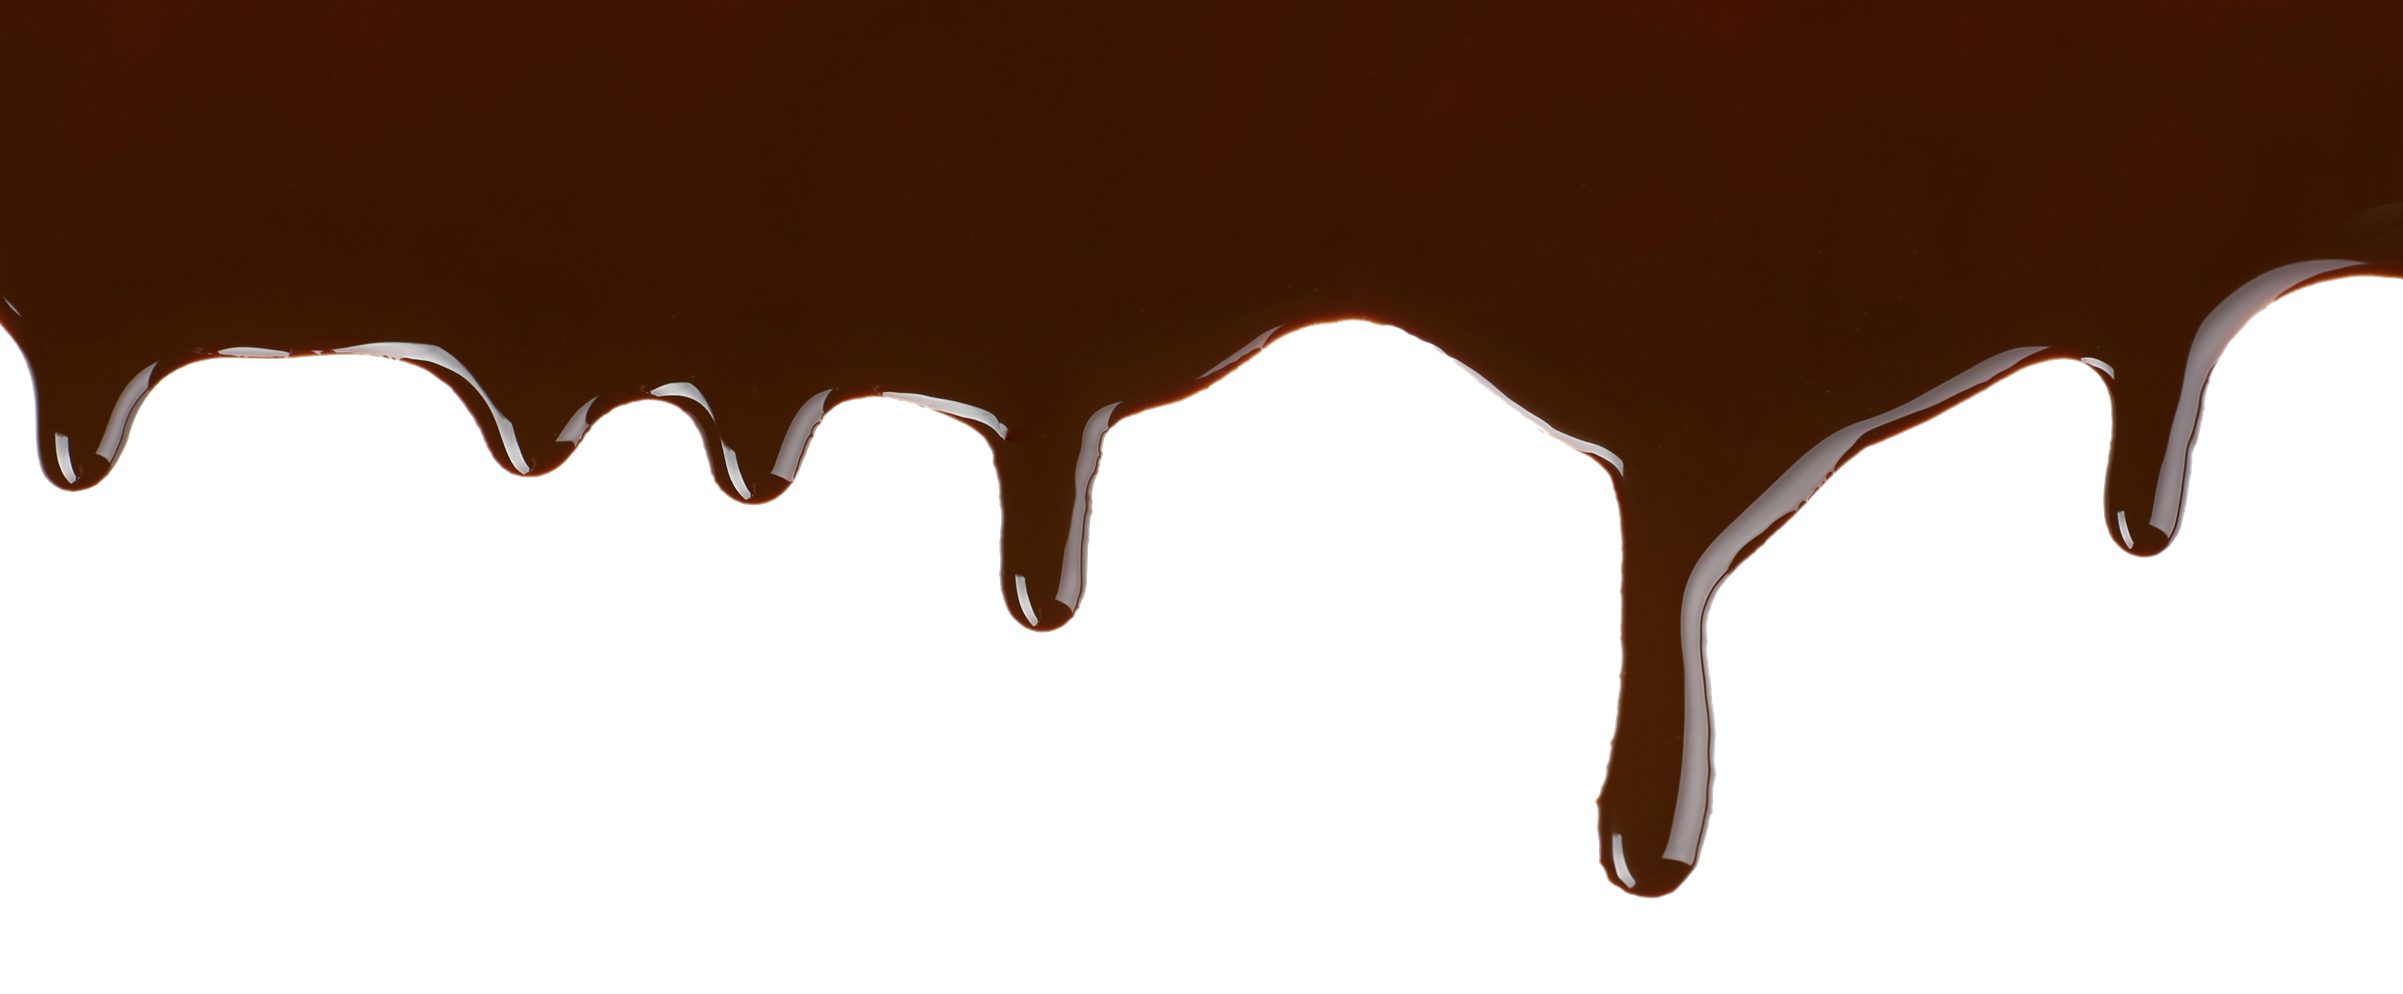 Melted chocolate background png. Image mart